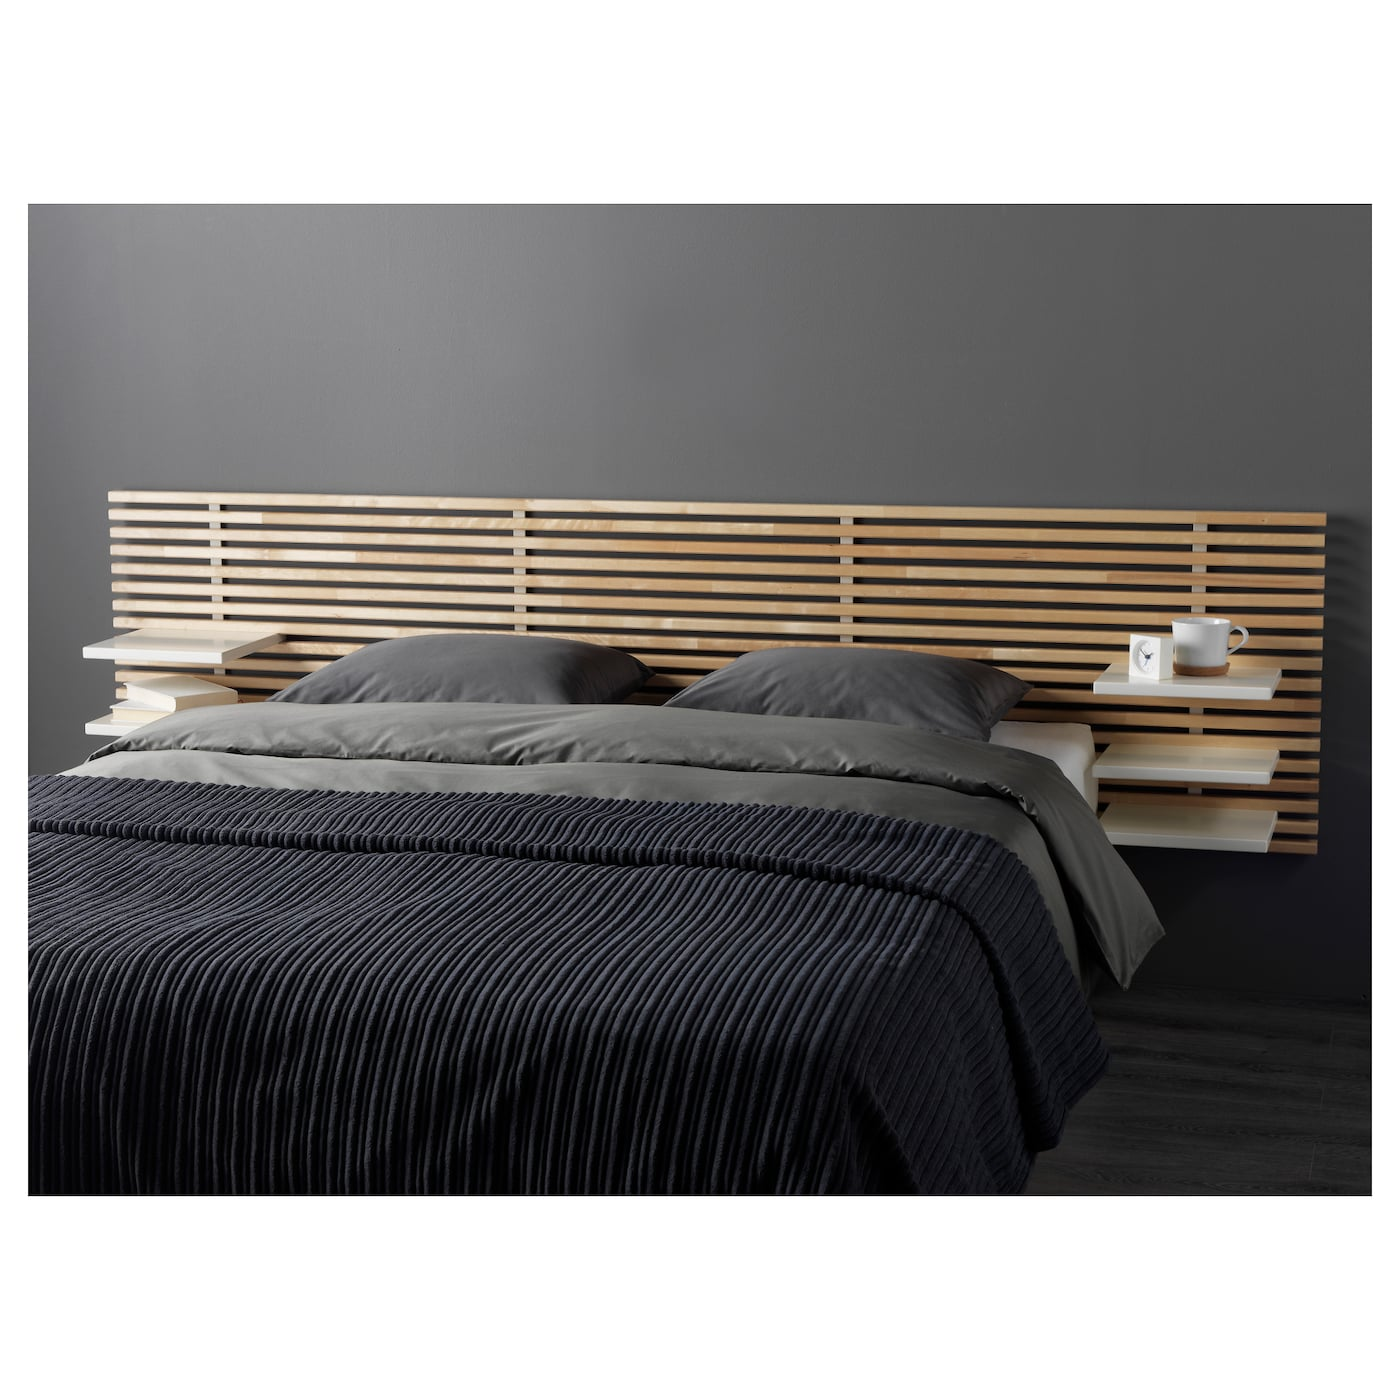 Mandal headboard birch white 240 cm ikea for Cadre de lit ikea avec tables de chevet